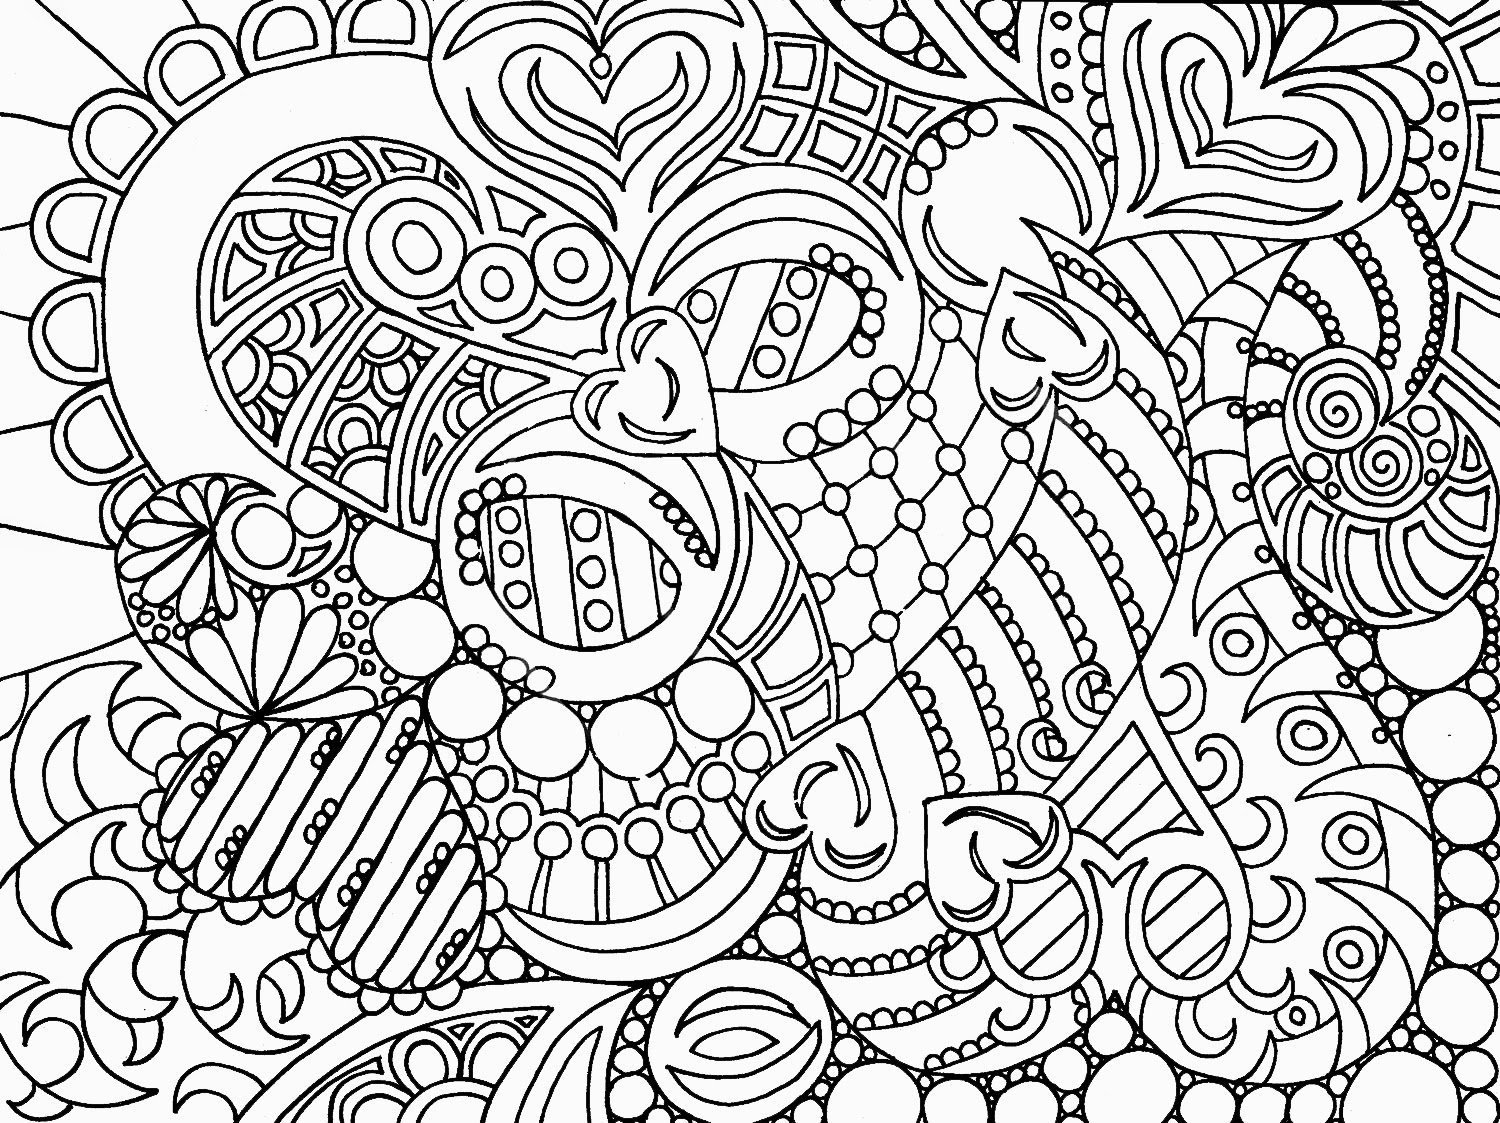 Abstract coloring #10, Download drawings